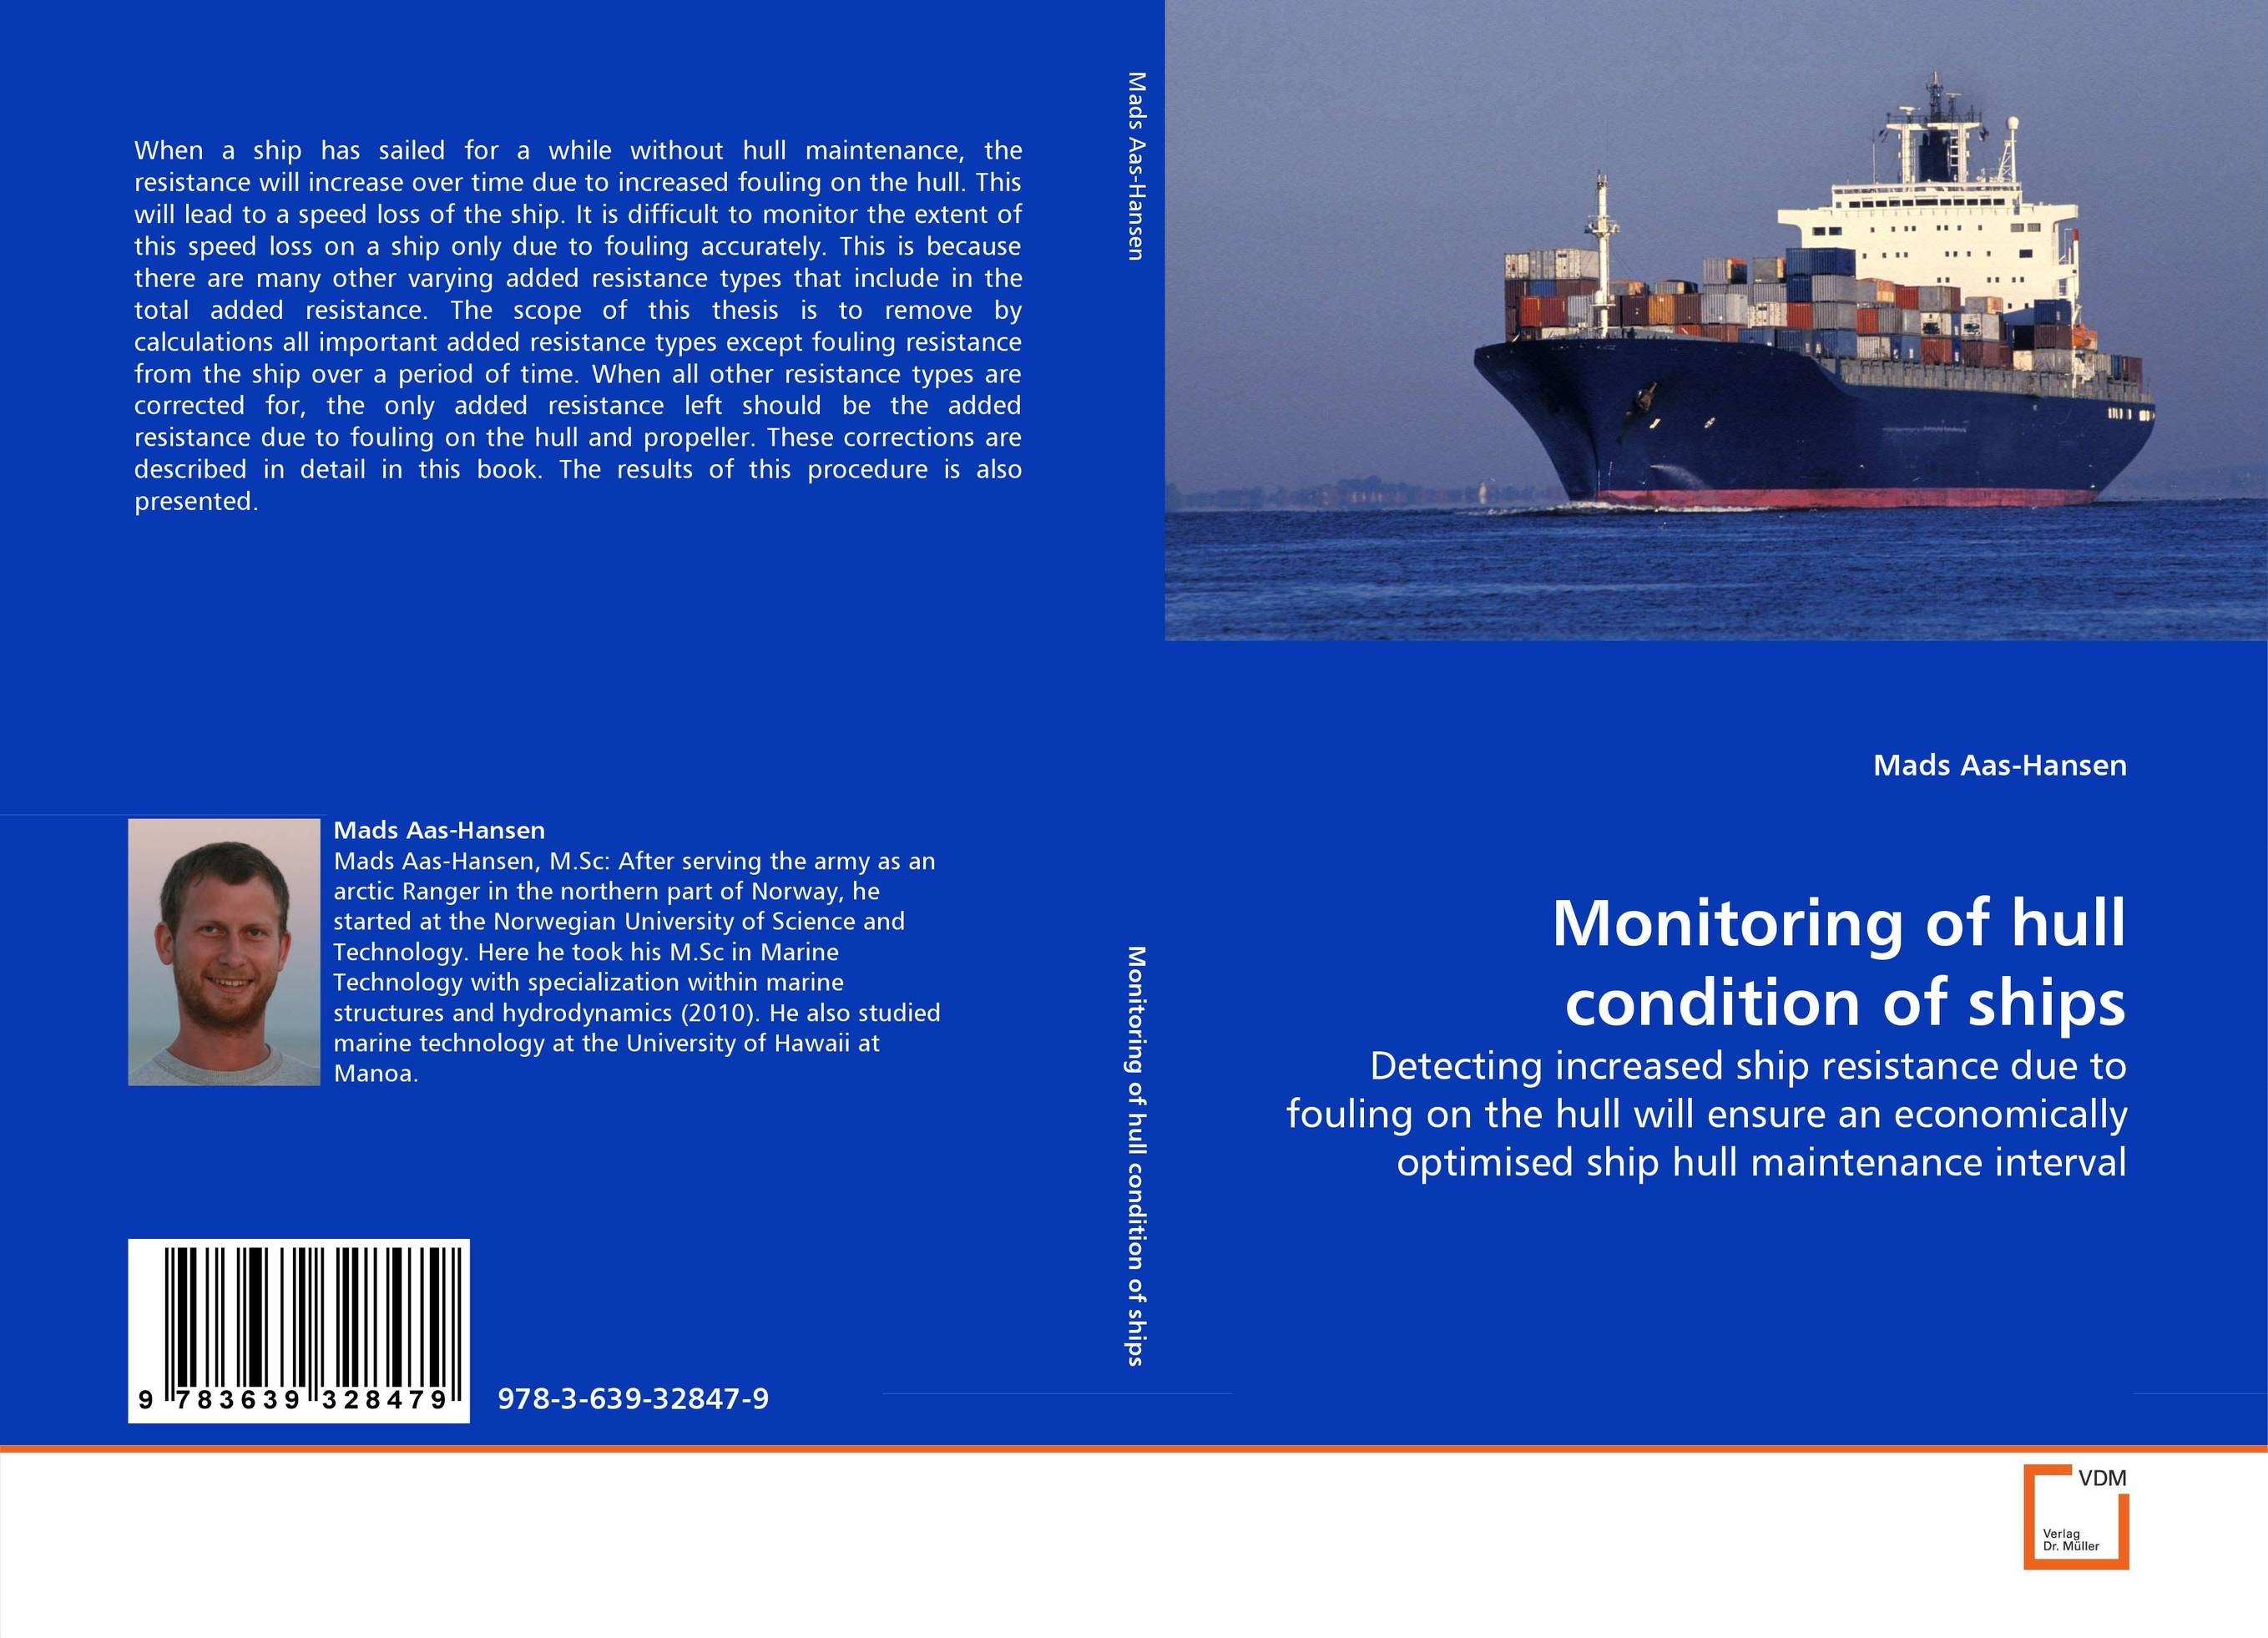 Monitoring of hull condition of ships resistance